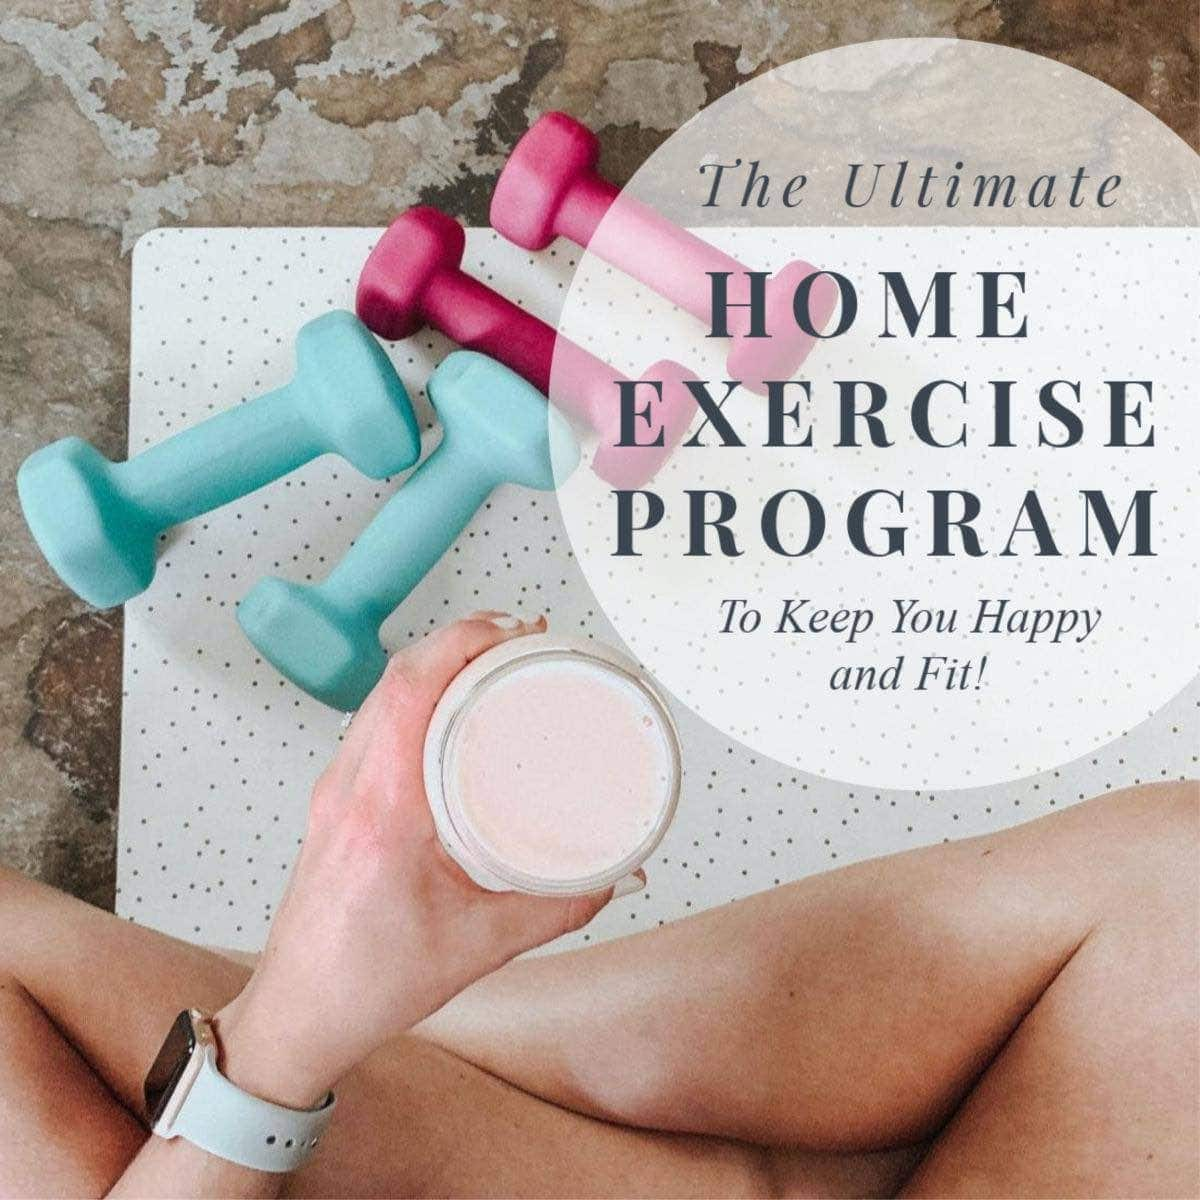 Home Exercise Program Dumbbells and yoga mat